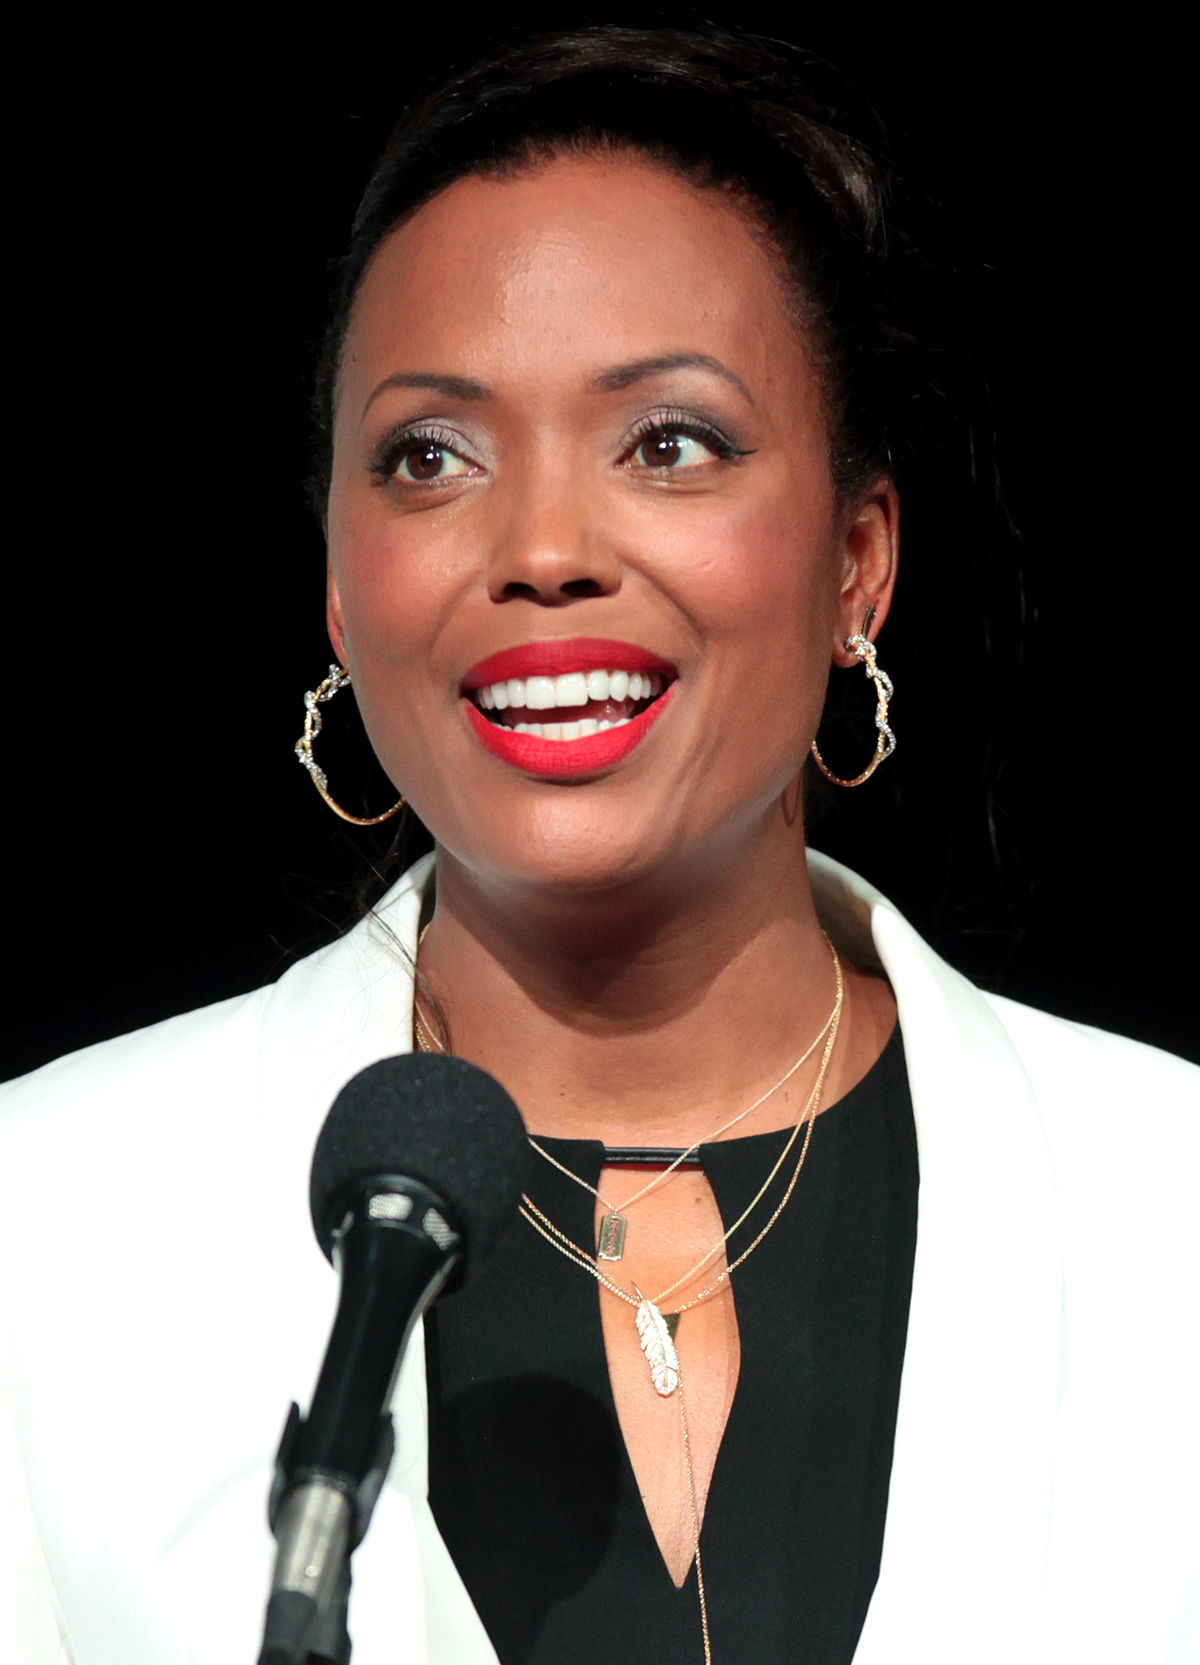 Aisha Tyler naked (53 photos), Topless, Paparazzi, Instagram, cameltoe 2019